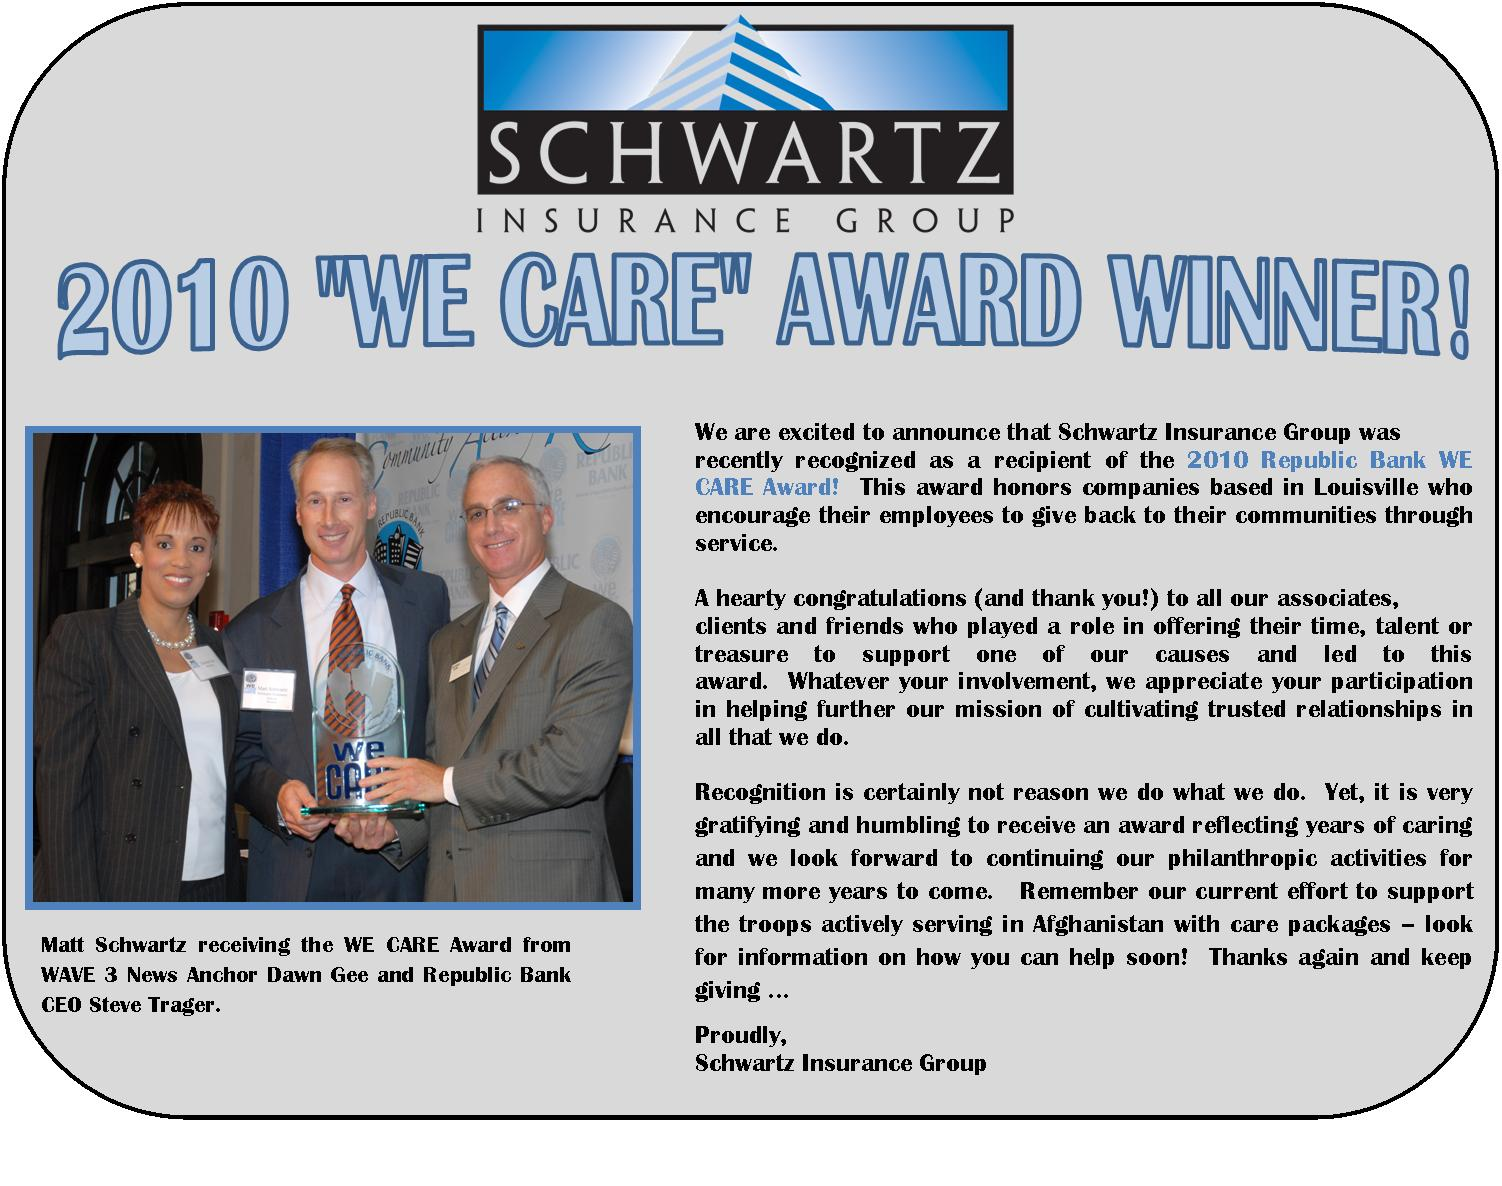 Schwartz Insurance Group Wins We CARE Award!